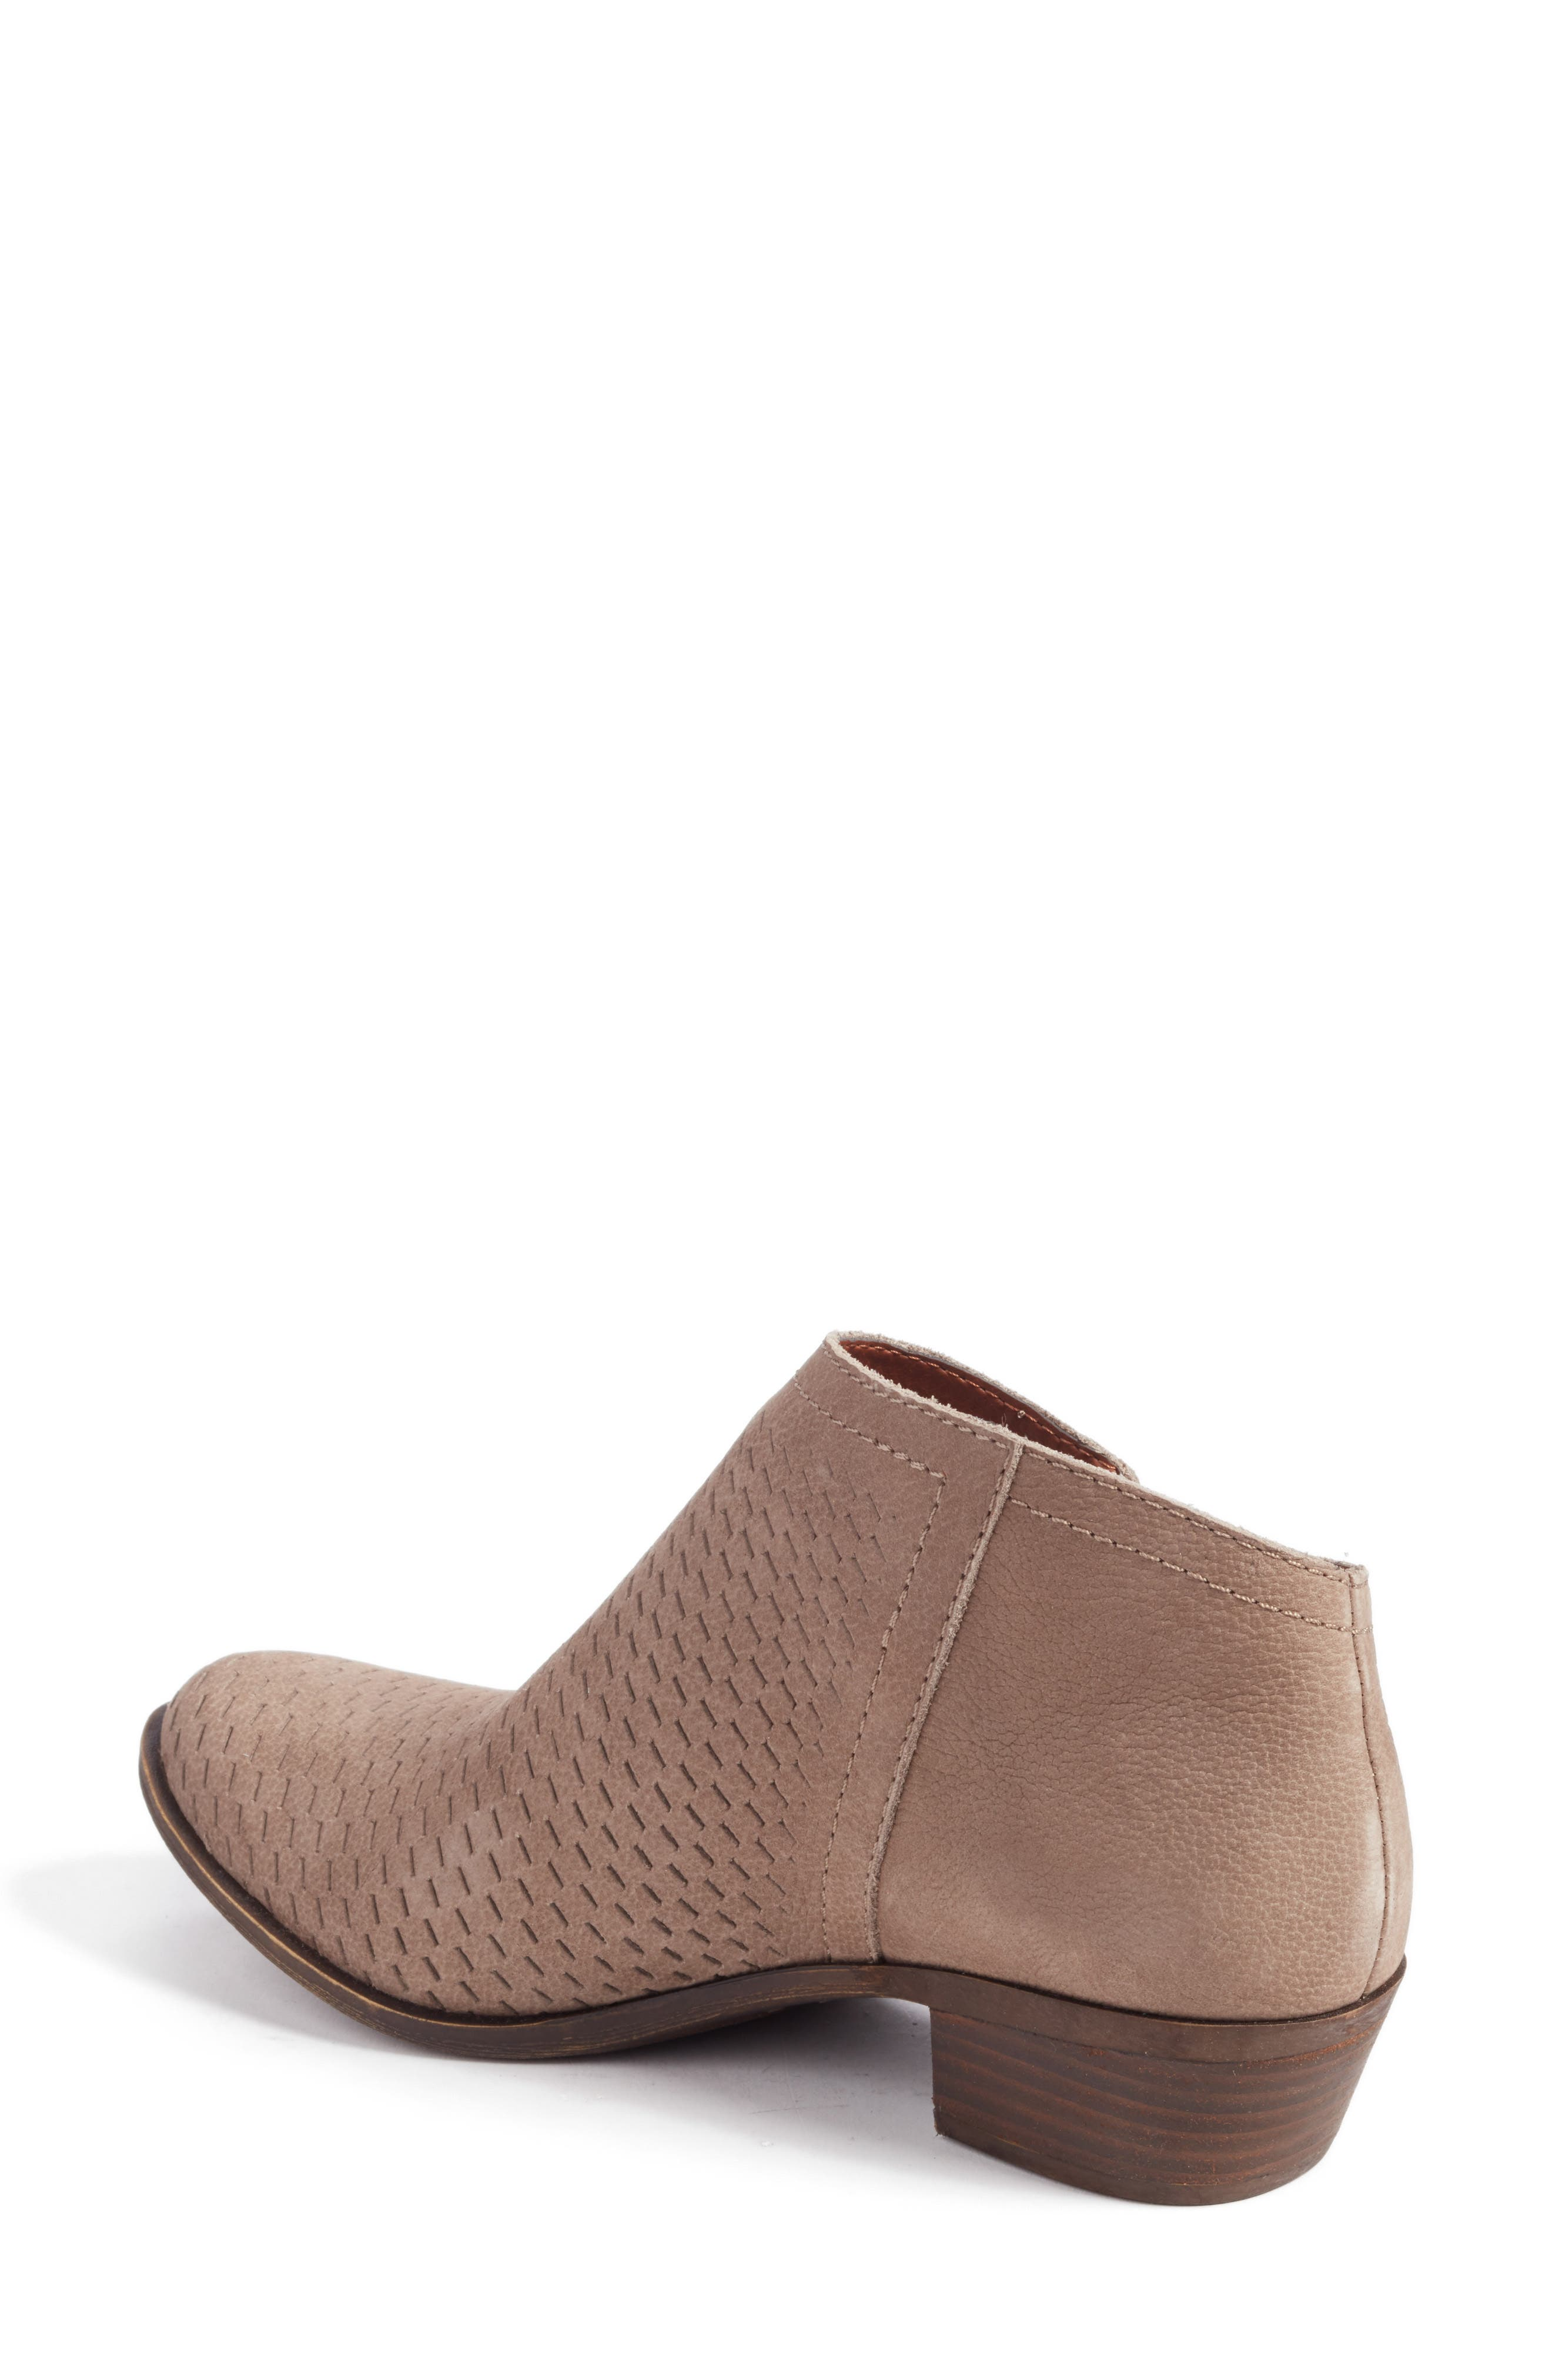 Alternate Image 3  - Lucky Brand Brielley Perforated Bootie (Women)